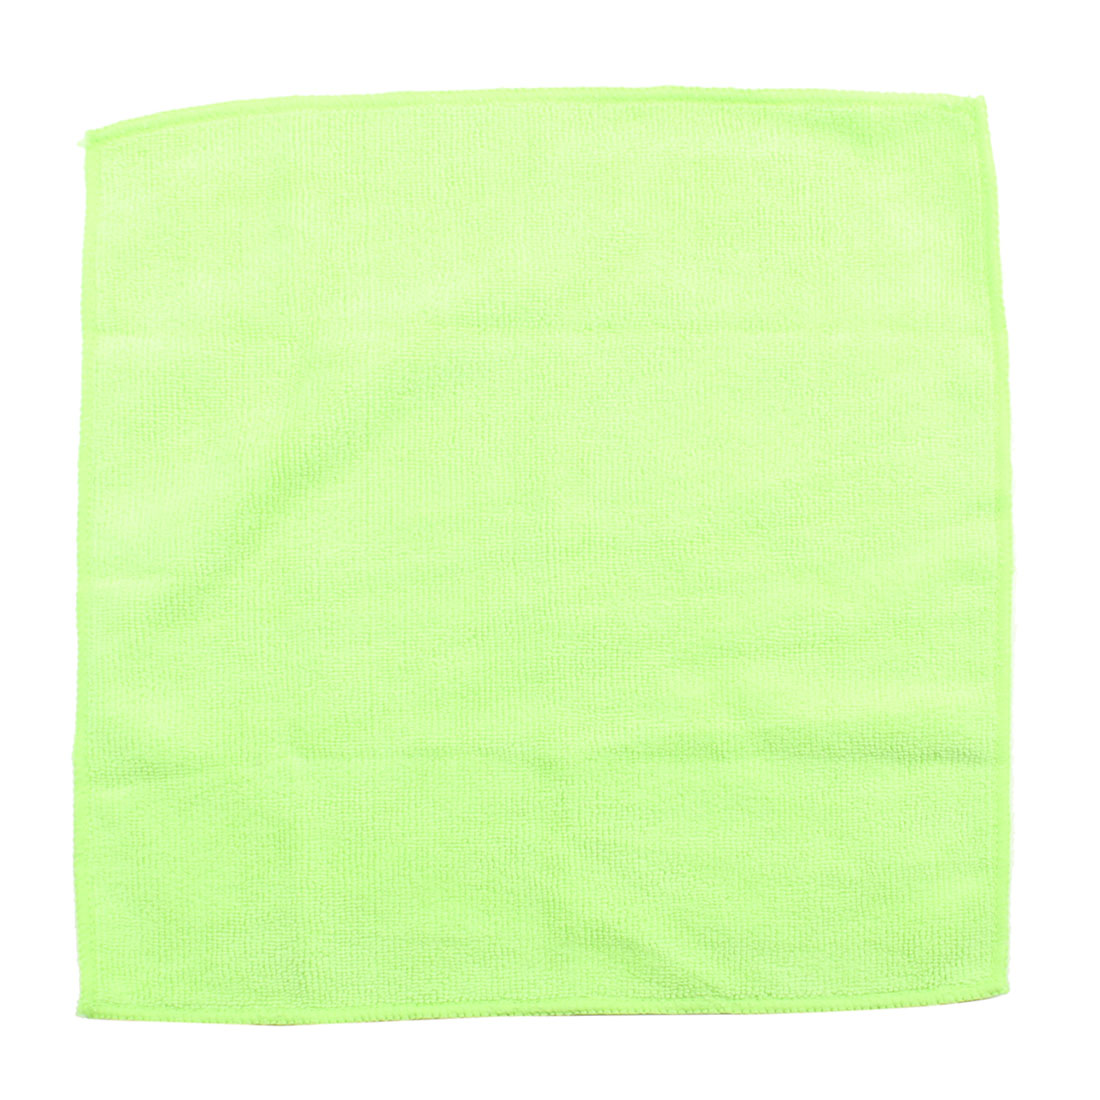 Household Light Green 30cm x 30cm Squared Dish Bowl Washing Cleaning Cloth Towel